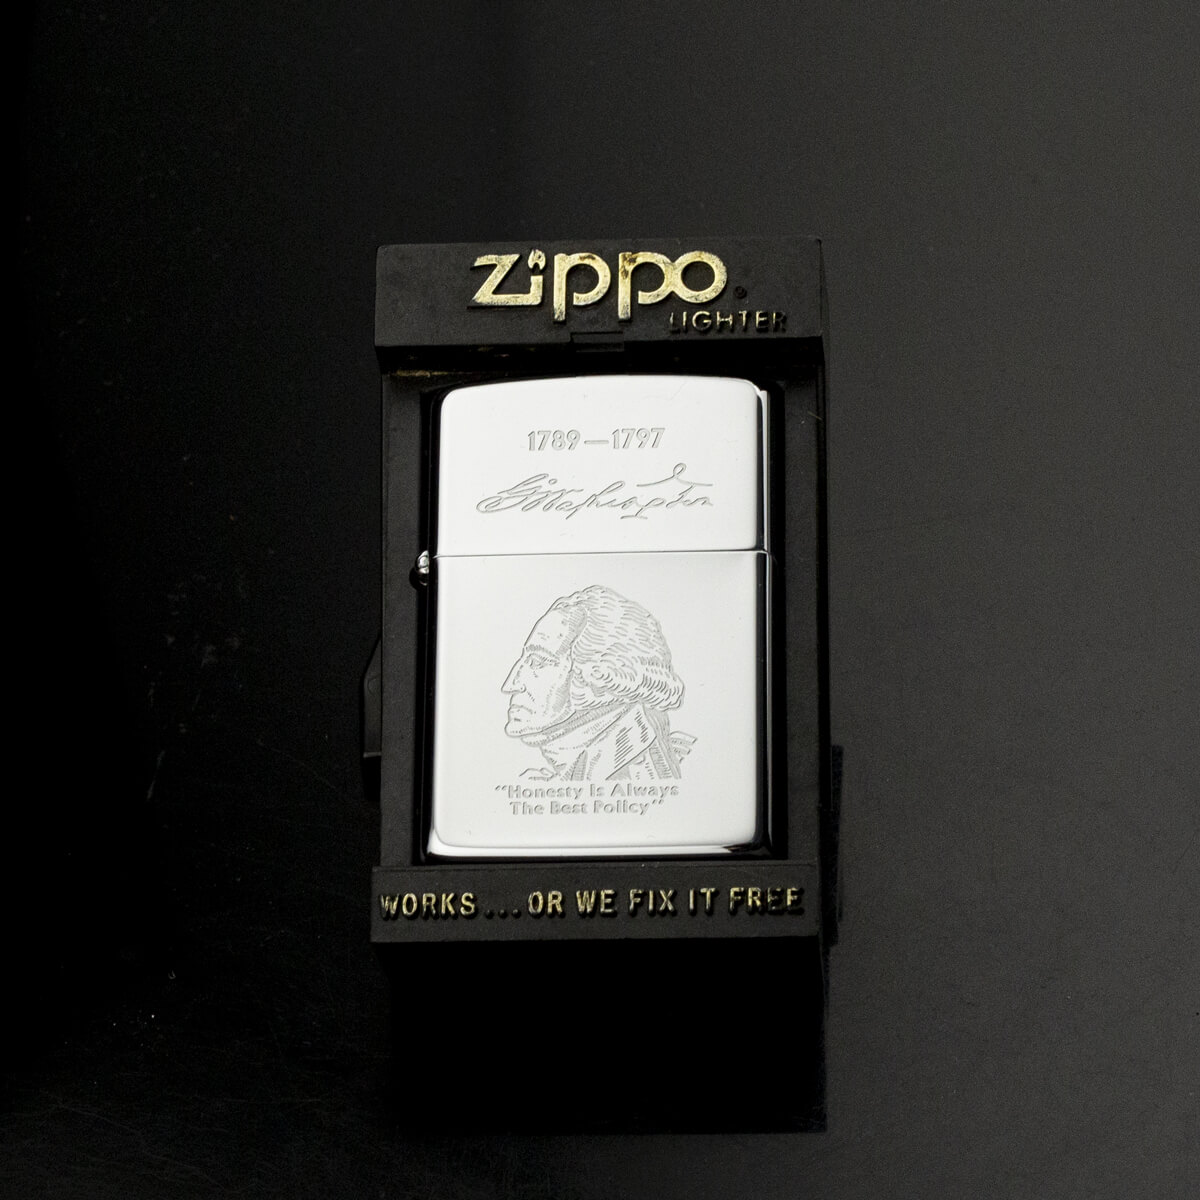 bat-lua-zippo-george-washington-1789-1797-vi-1990-tong-thong-my-hang-xach-tay-my